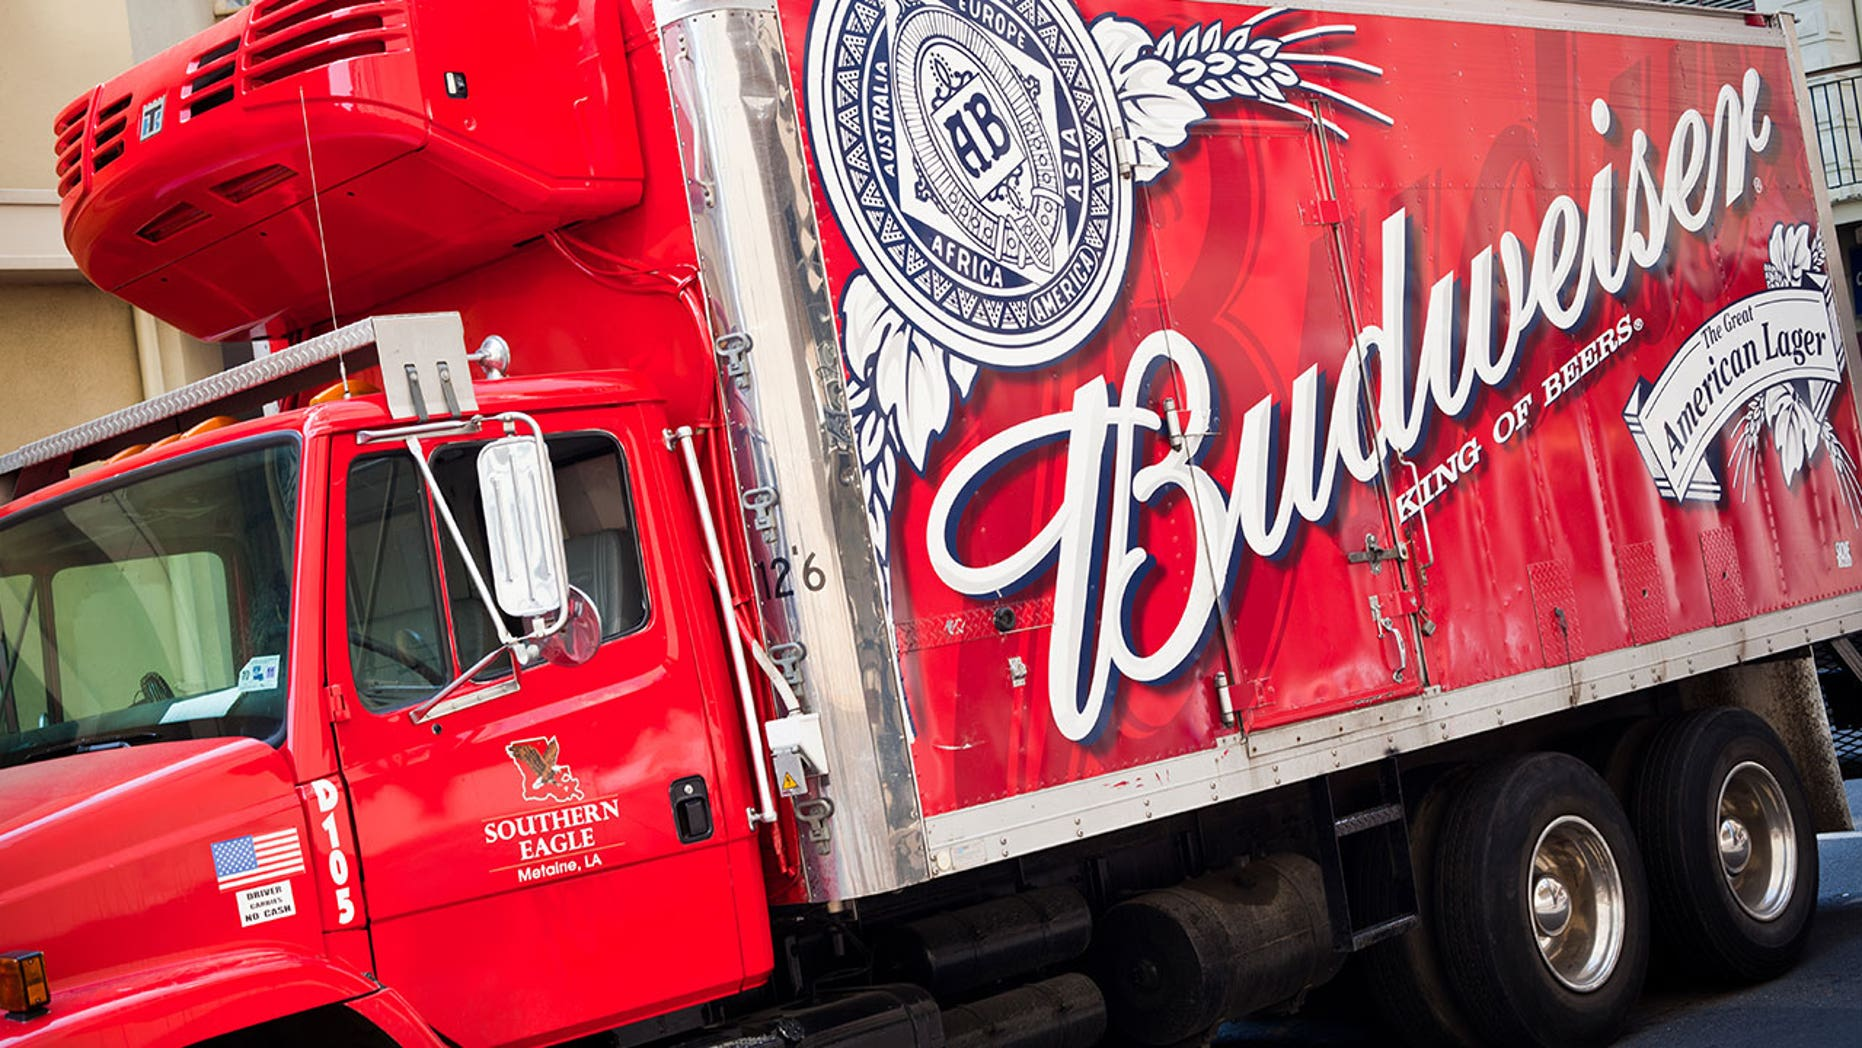 Counterfeit Budweiser beer operation in China shut down